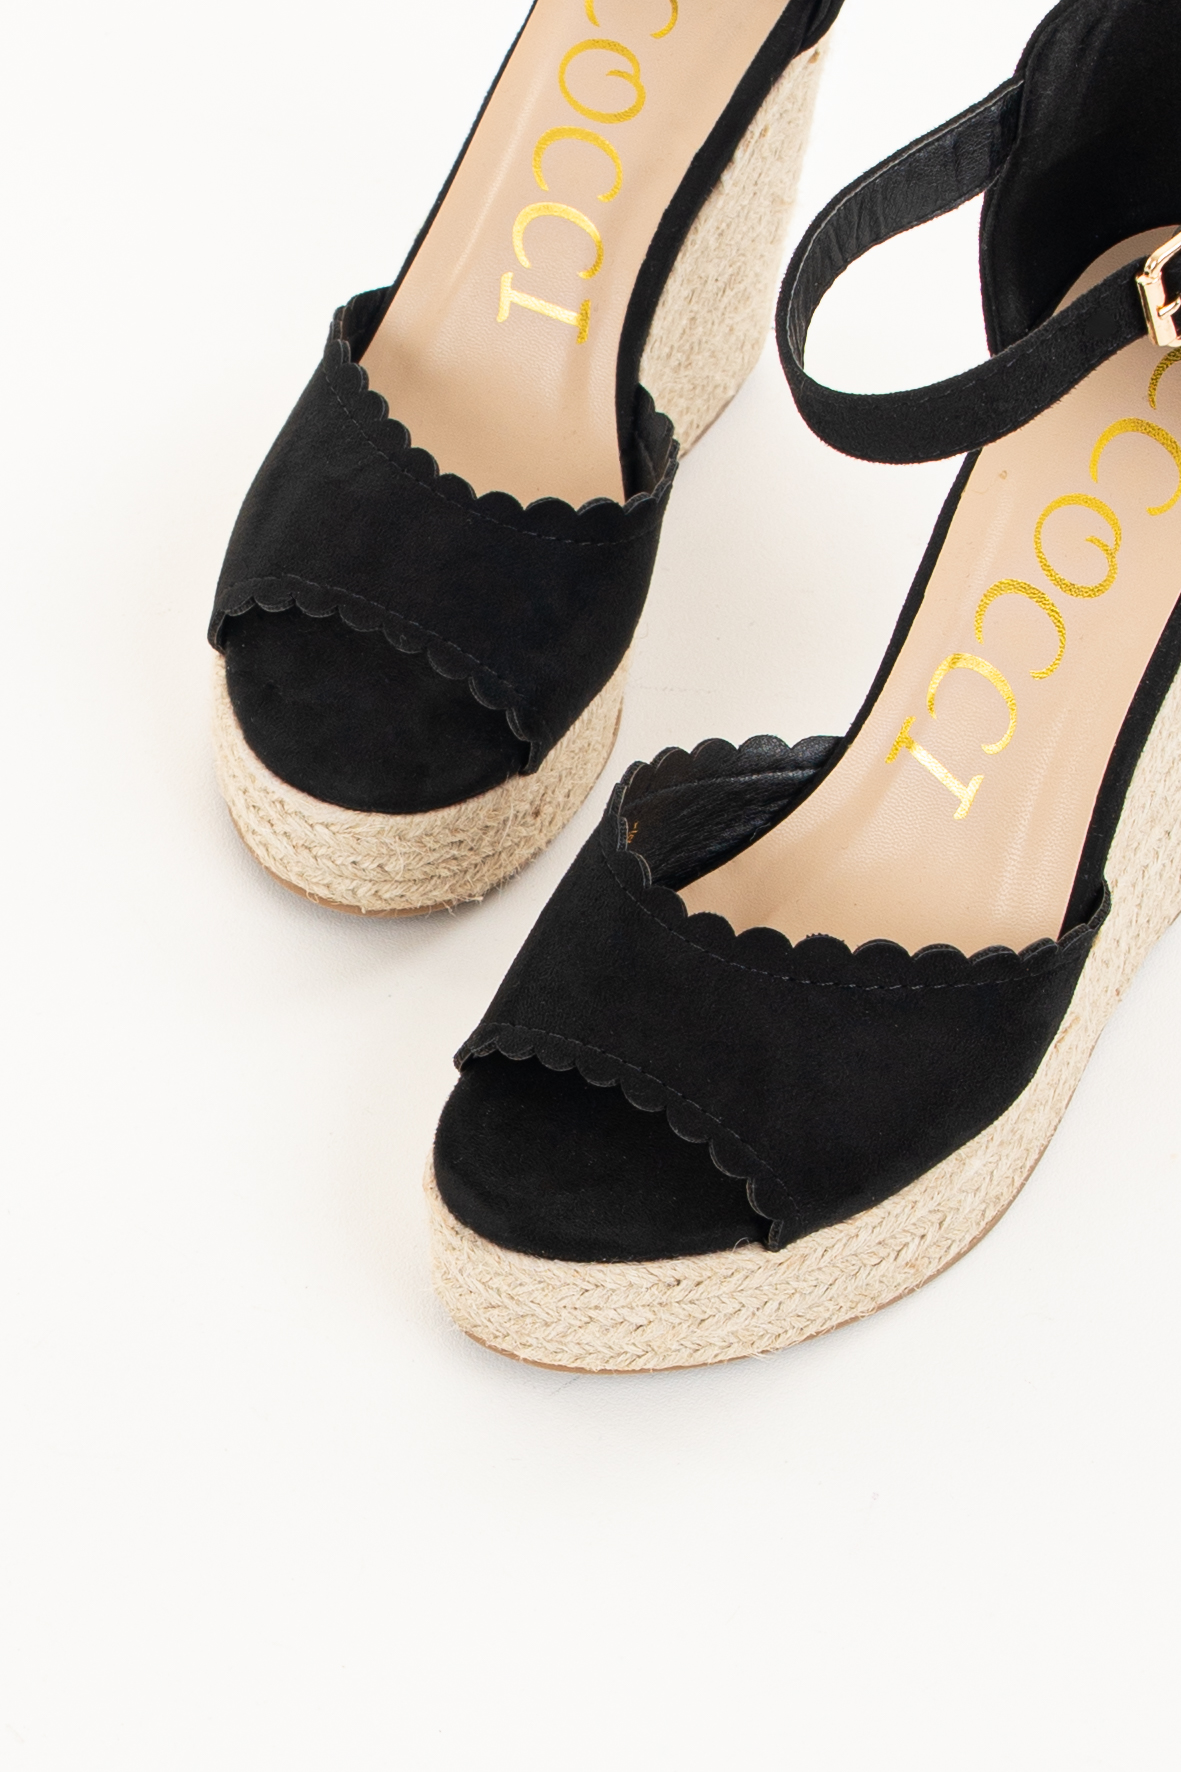 Black Espadrille Wedge Sandals with Scalloped Edges